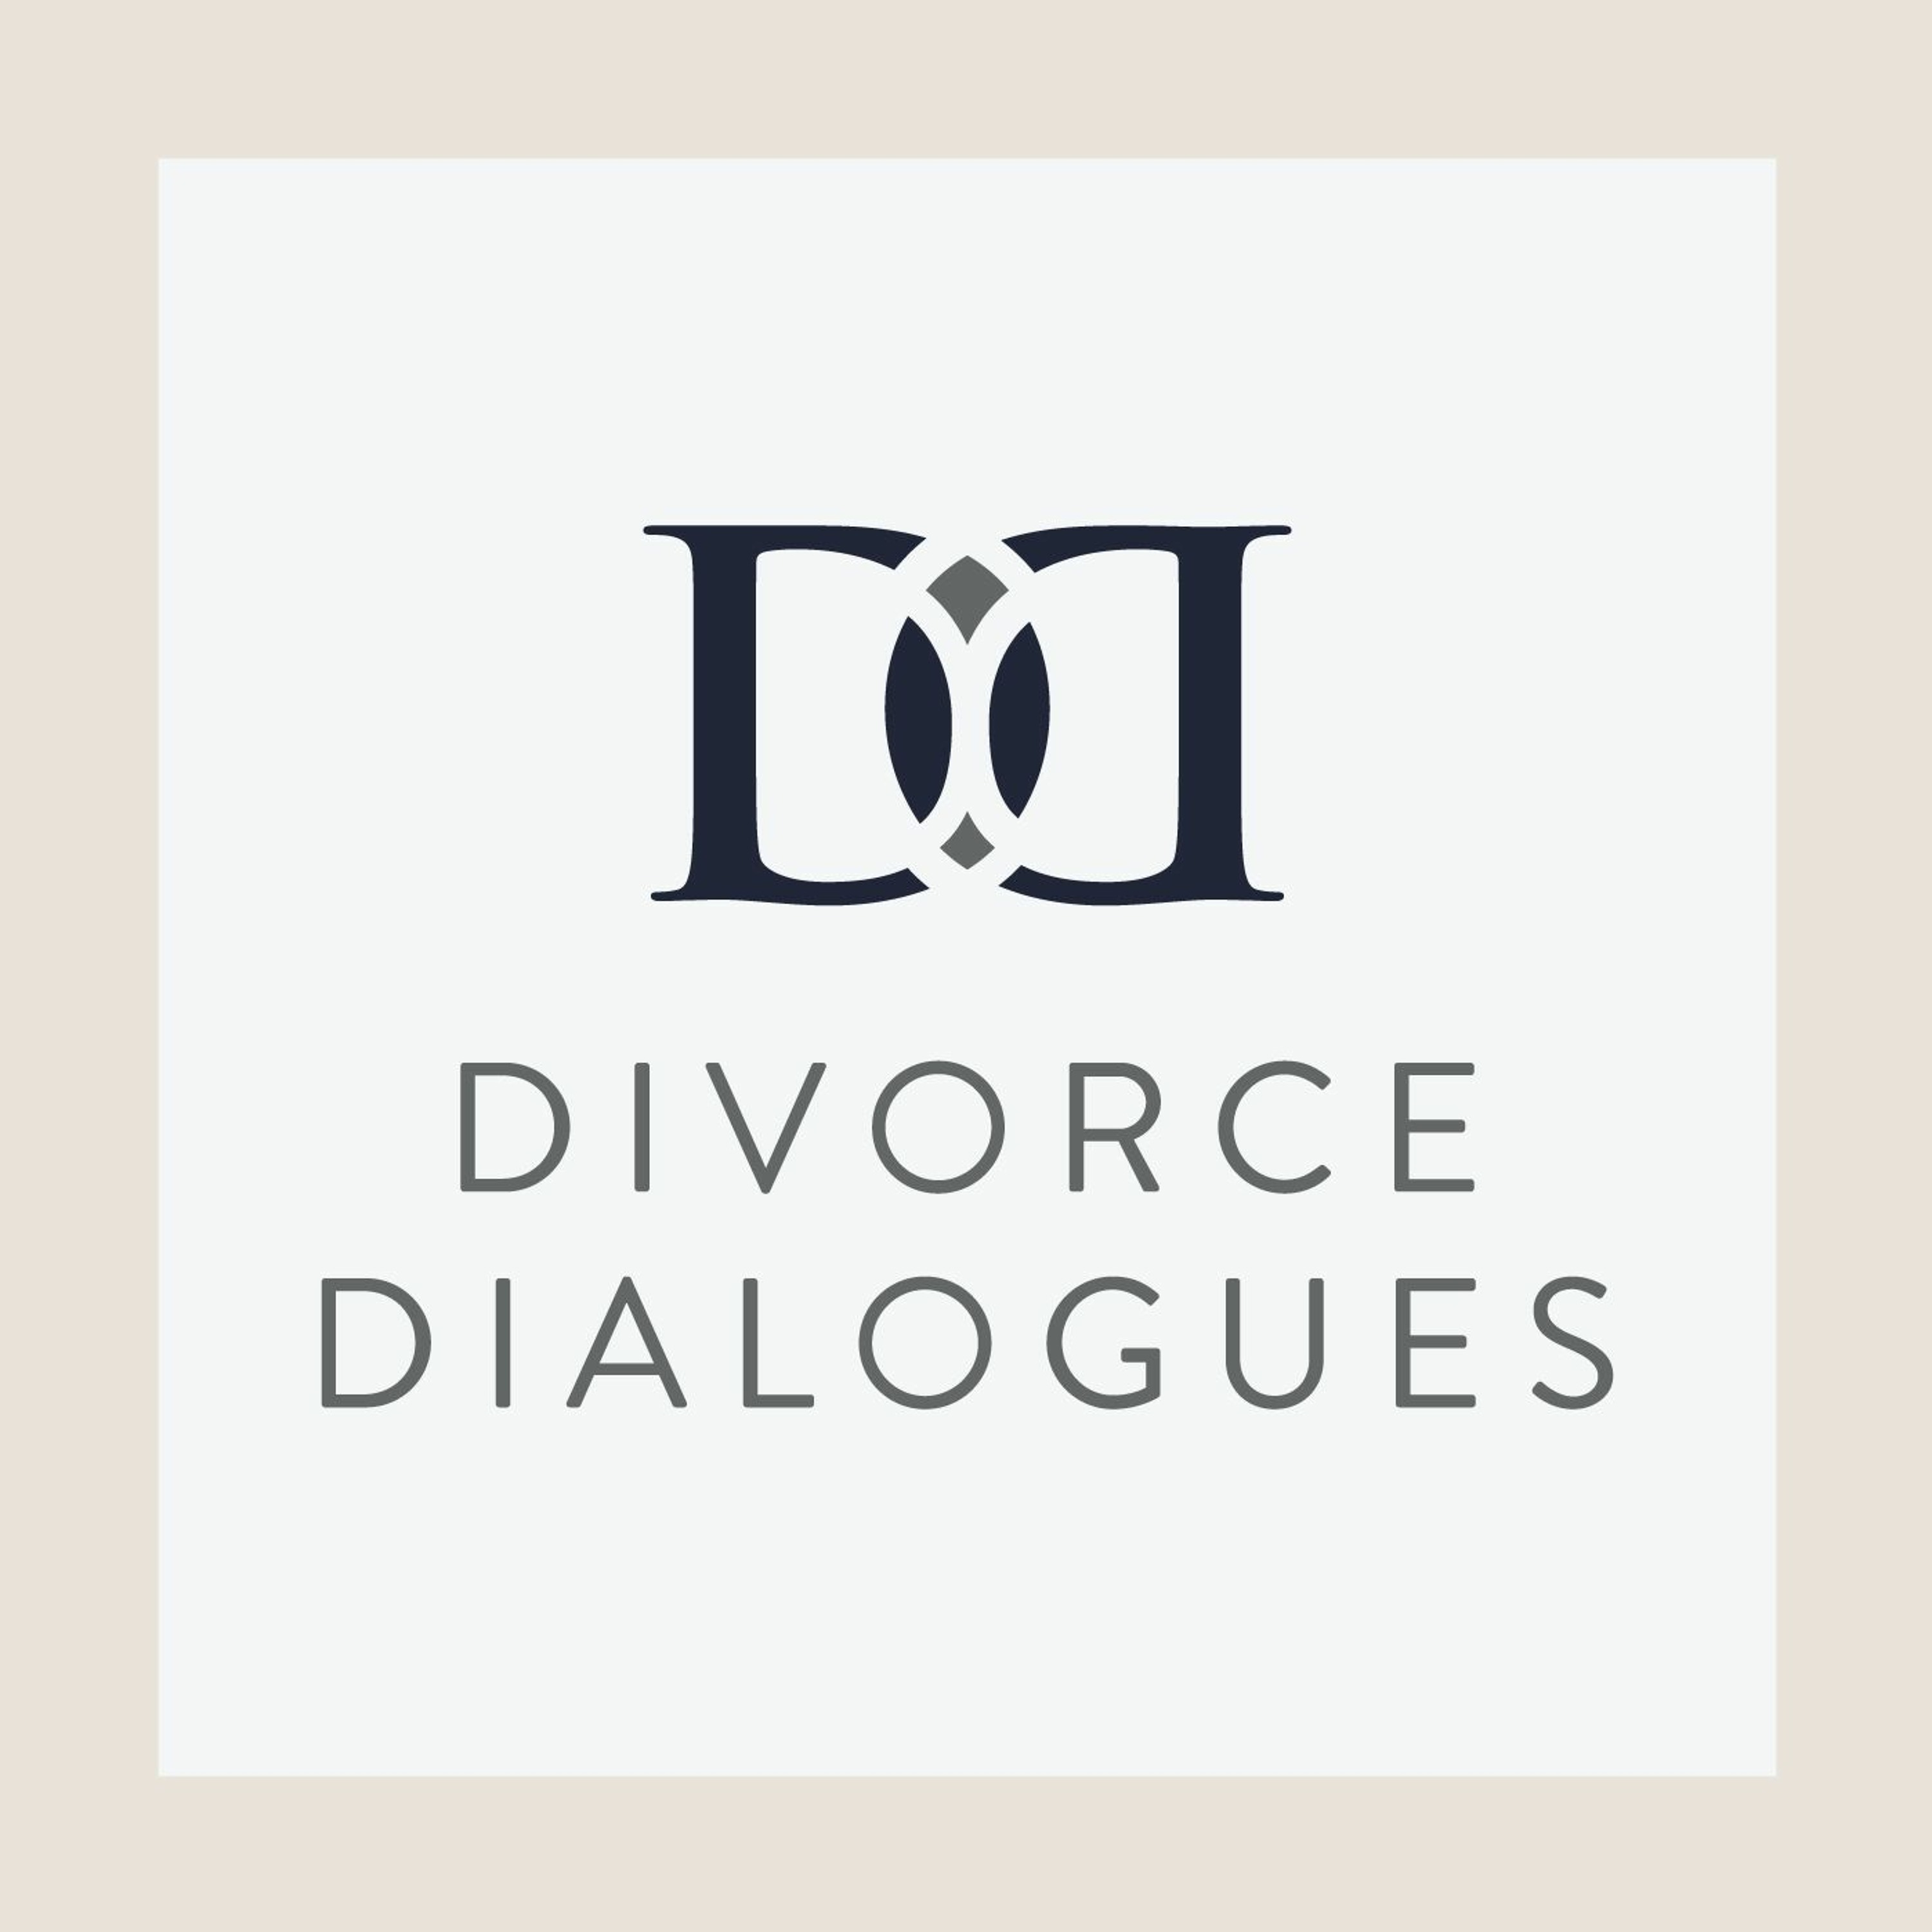 Divorce Dialogues - Unlocking Your Destructive Cycle to Stop the Fight with Michelle Brody, Ph.D.